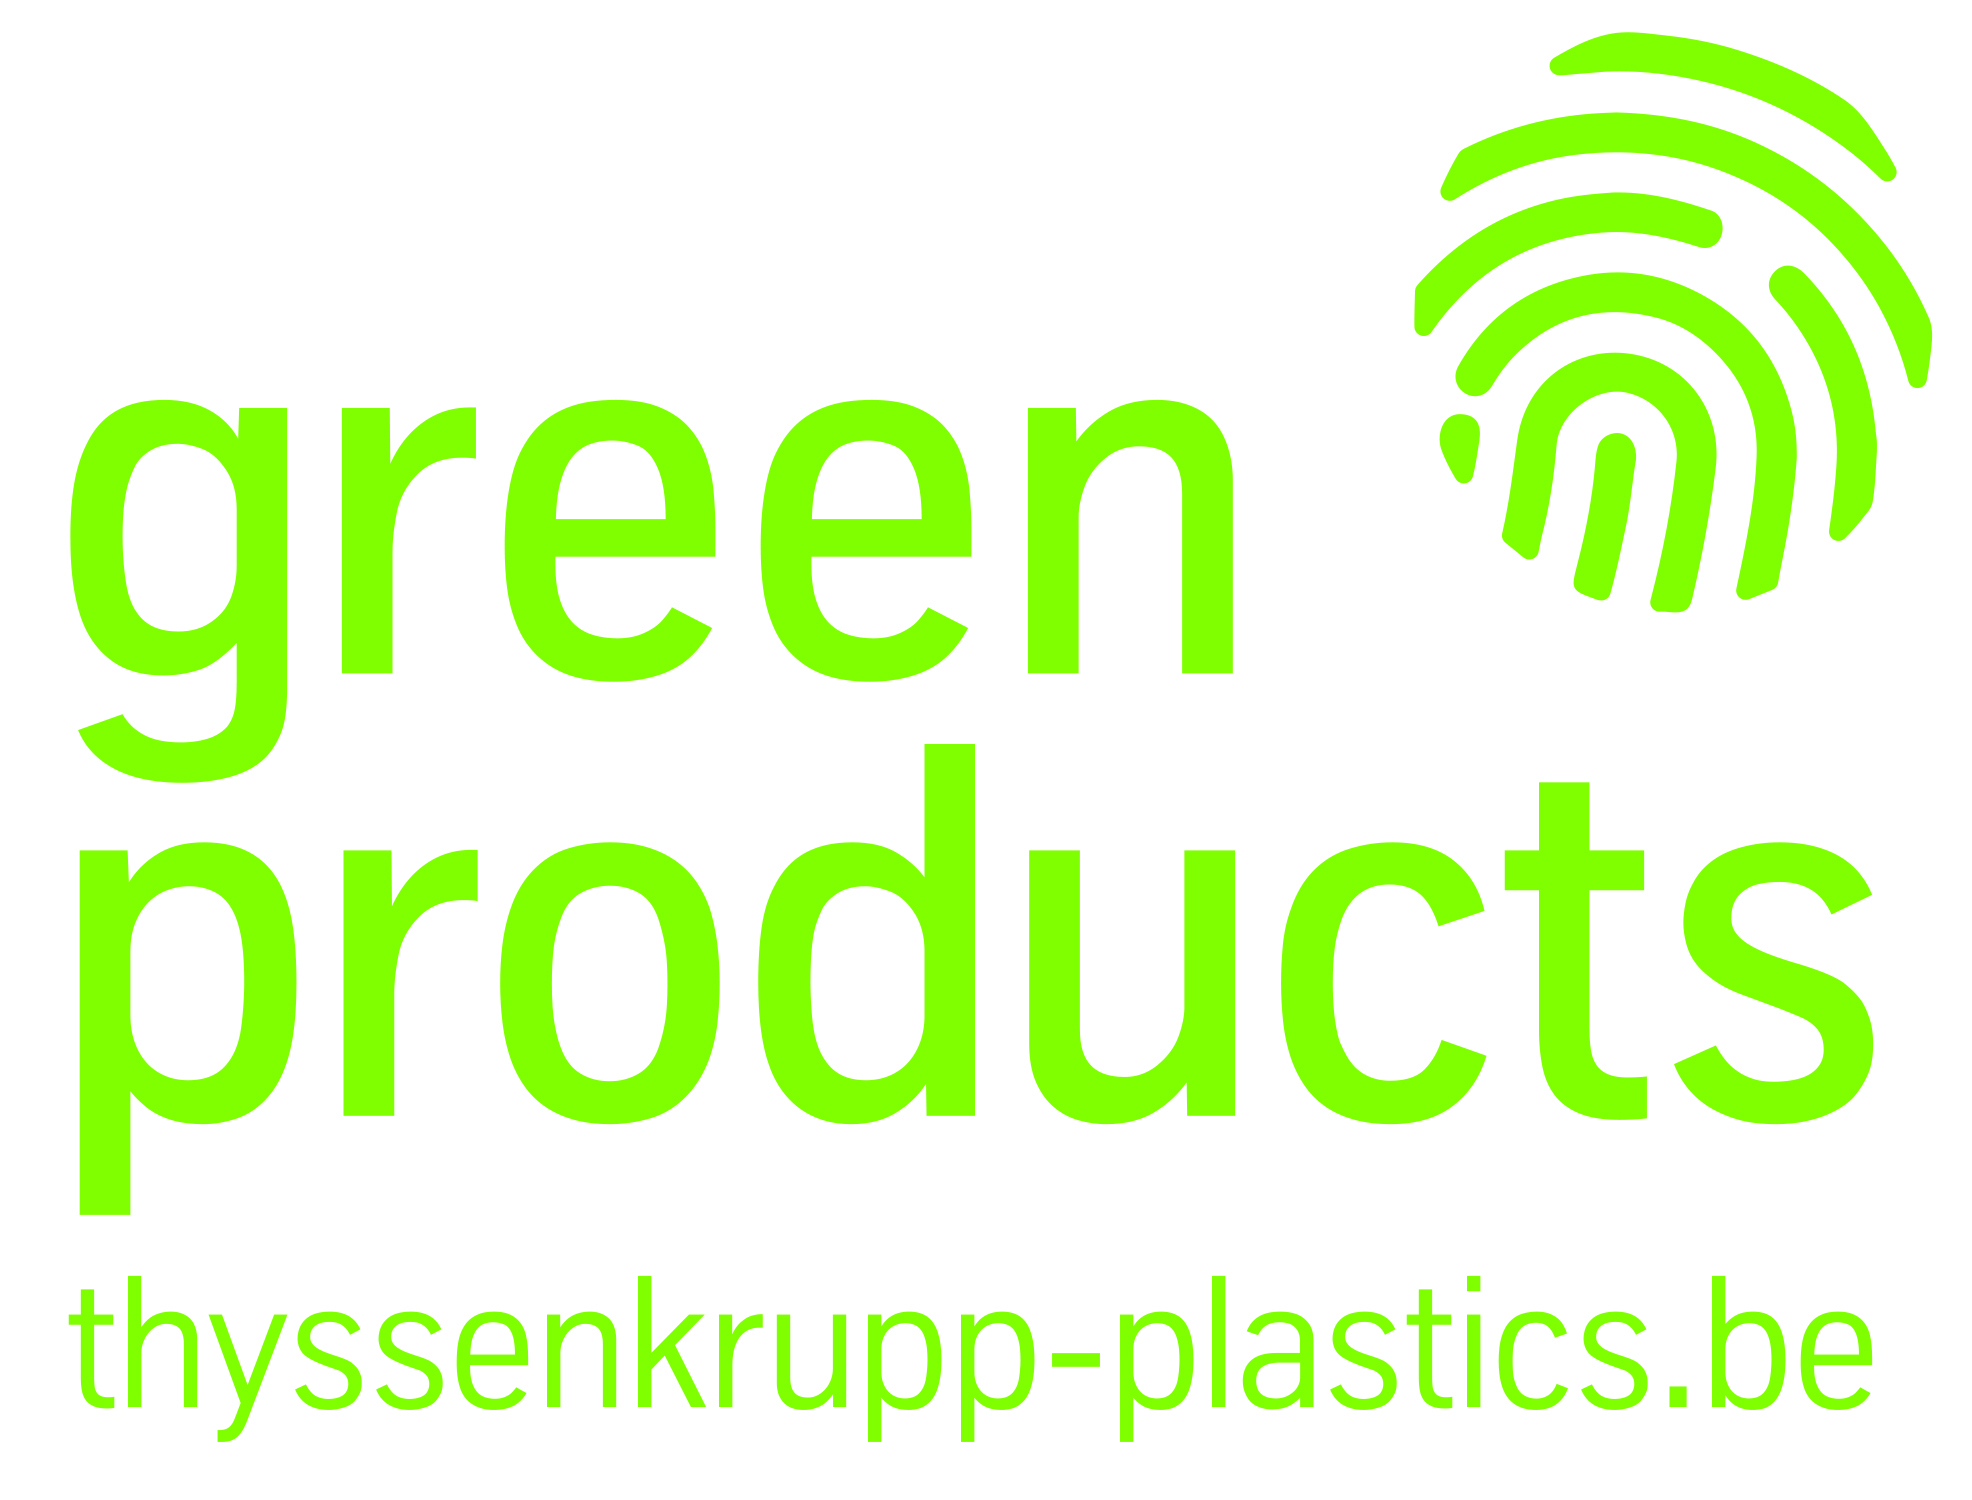 Afbeelding logo Green Products